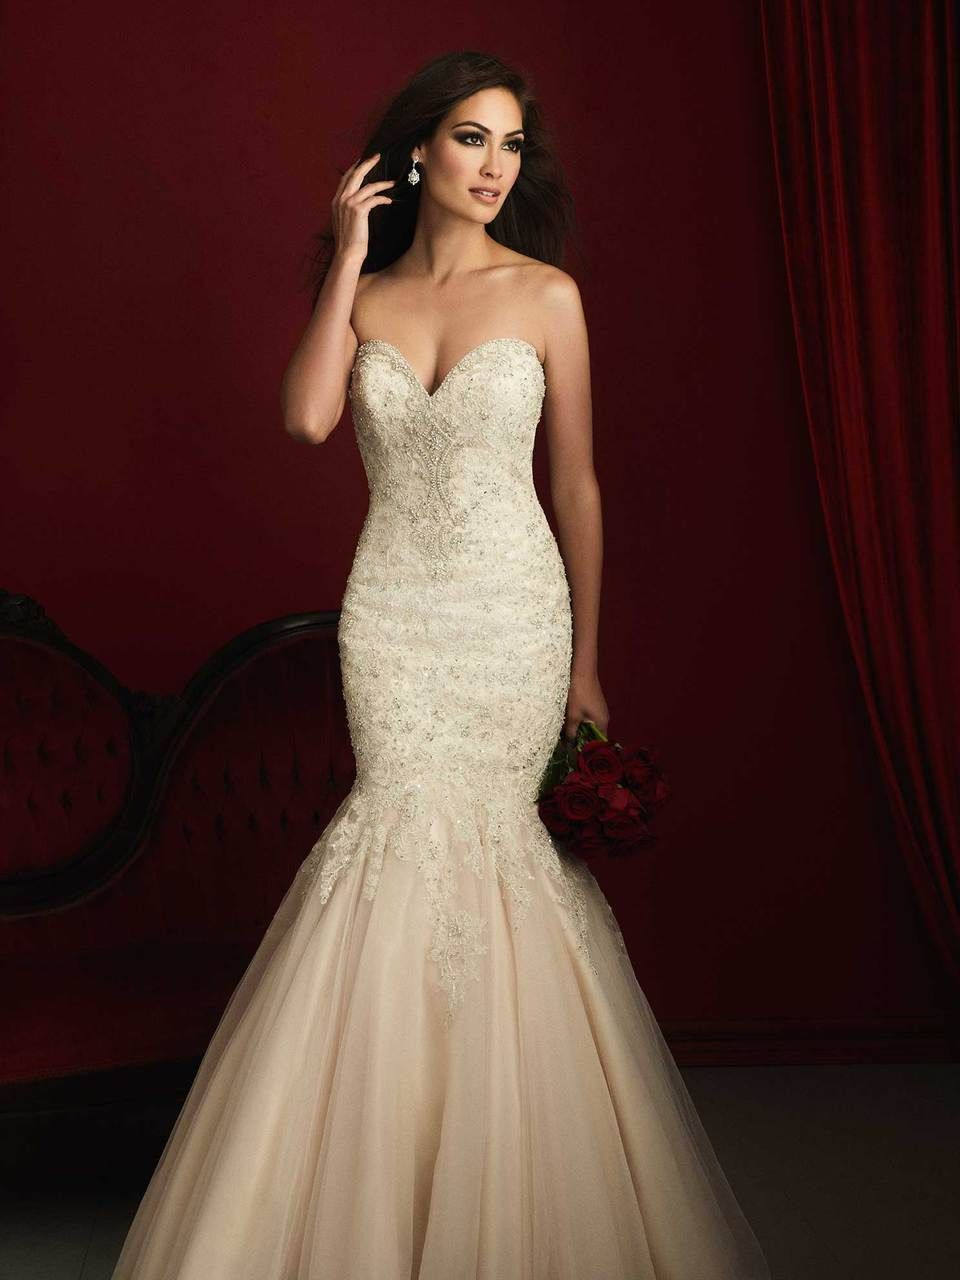 Bridals by lori allure couture bridals 0129684 in store http wedding dresses bridesmaid dresses prom dresses and bridal dresses allure couture wedding dresses style allure couture wedding dresses ombrellifo Choice Image